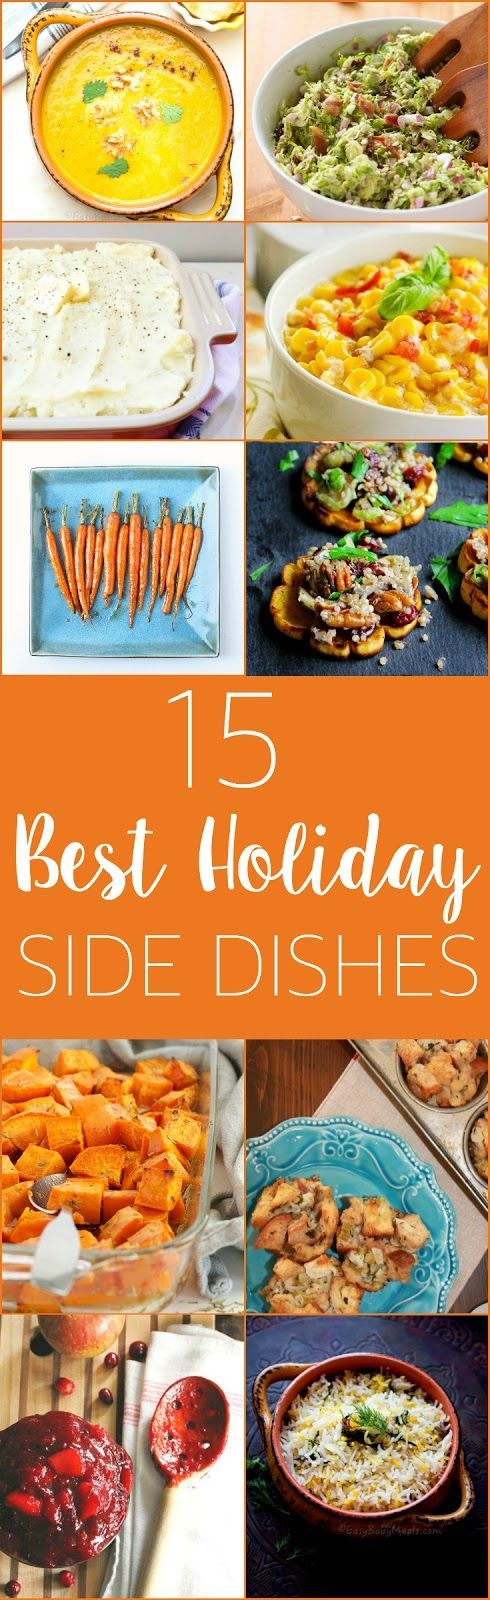 15 Best Ever Holiday Side Dishes http://www.thebusybaker.ca